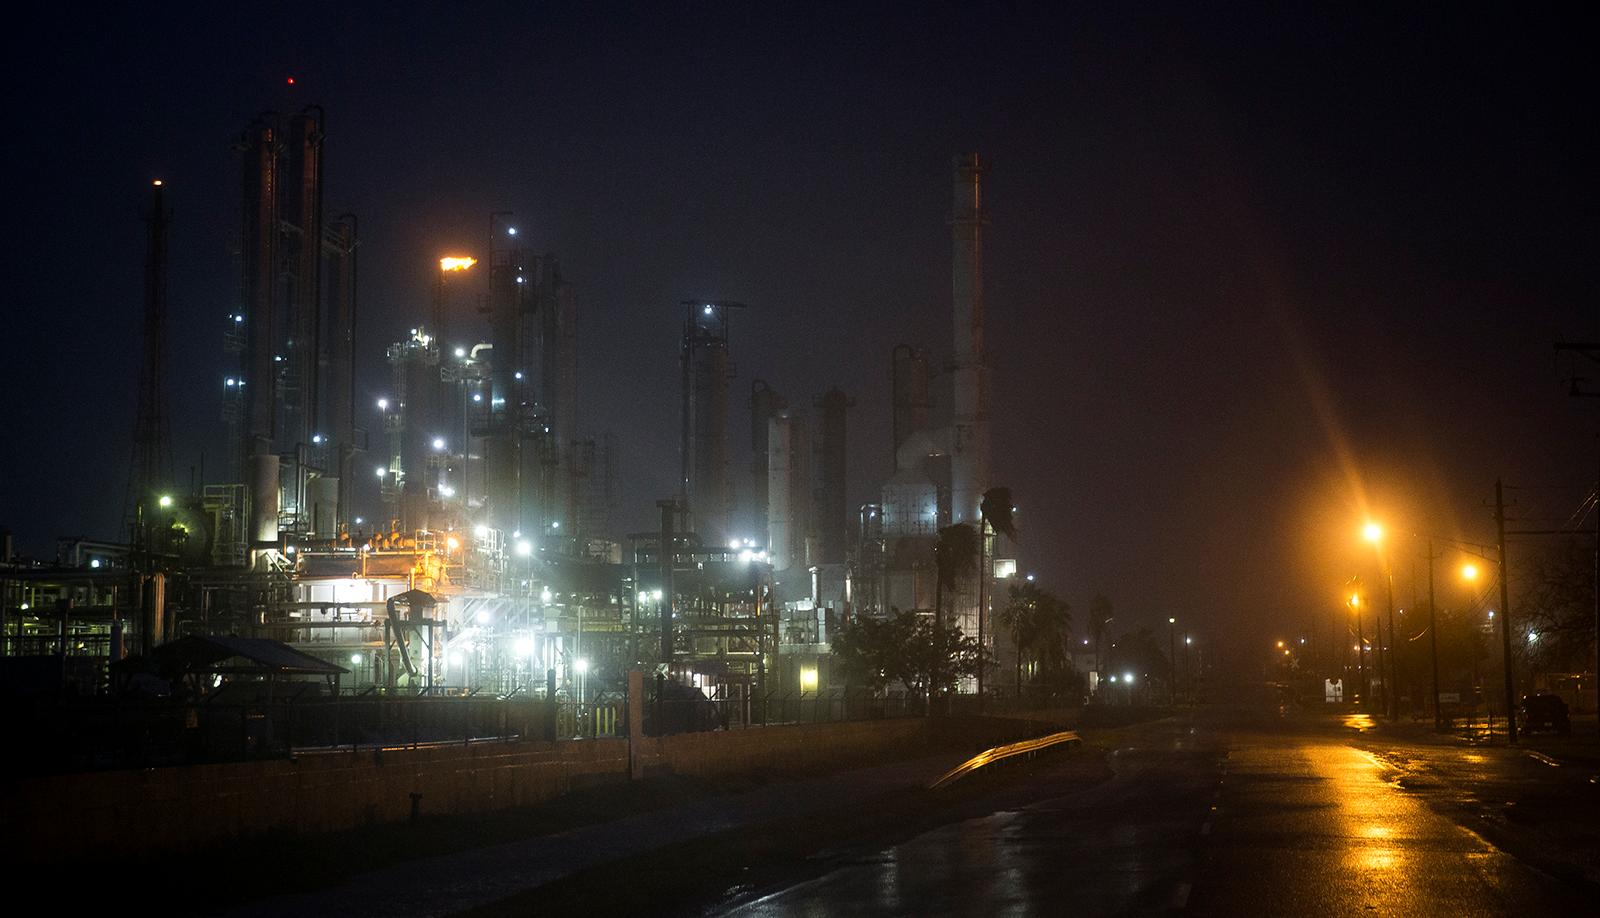 A Valero oil refinery's flare continues to burn as Hurricane Harvey makes landfall in Corpus Christi, Texas, on Friday, Aug. 25, 2017. Hurricane Harvey smashed into Texas late Friday, lashing a wide swath of the Gulf Coast with strong winds and torrential rain from the fiercest hurricane to hit the U.S. in more than a decade. (Nick Wagner/Austin American-Statesman via AP)